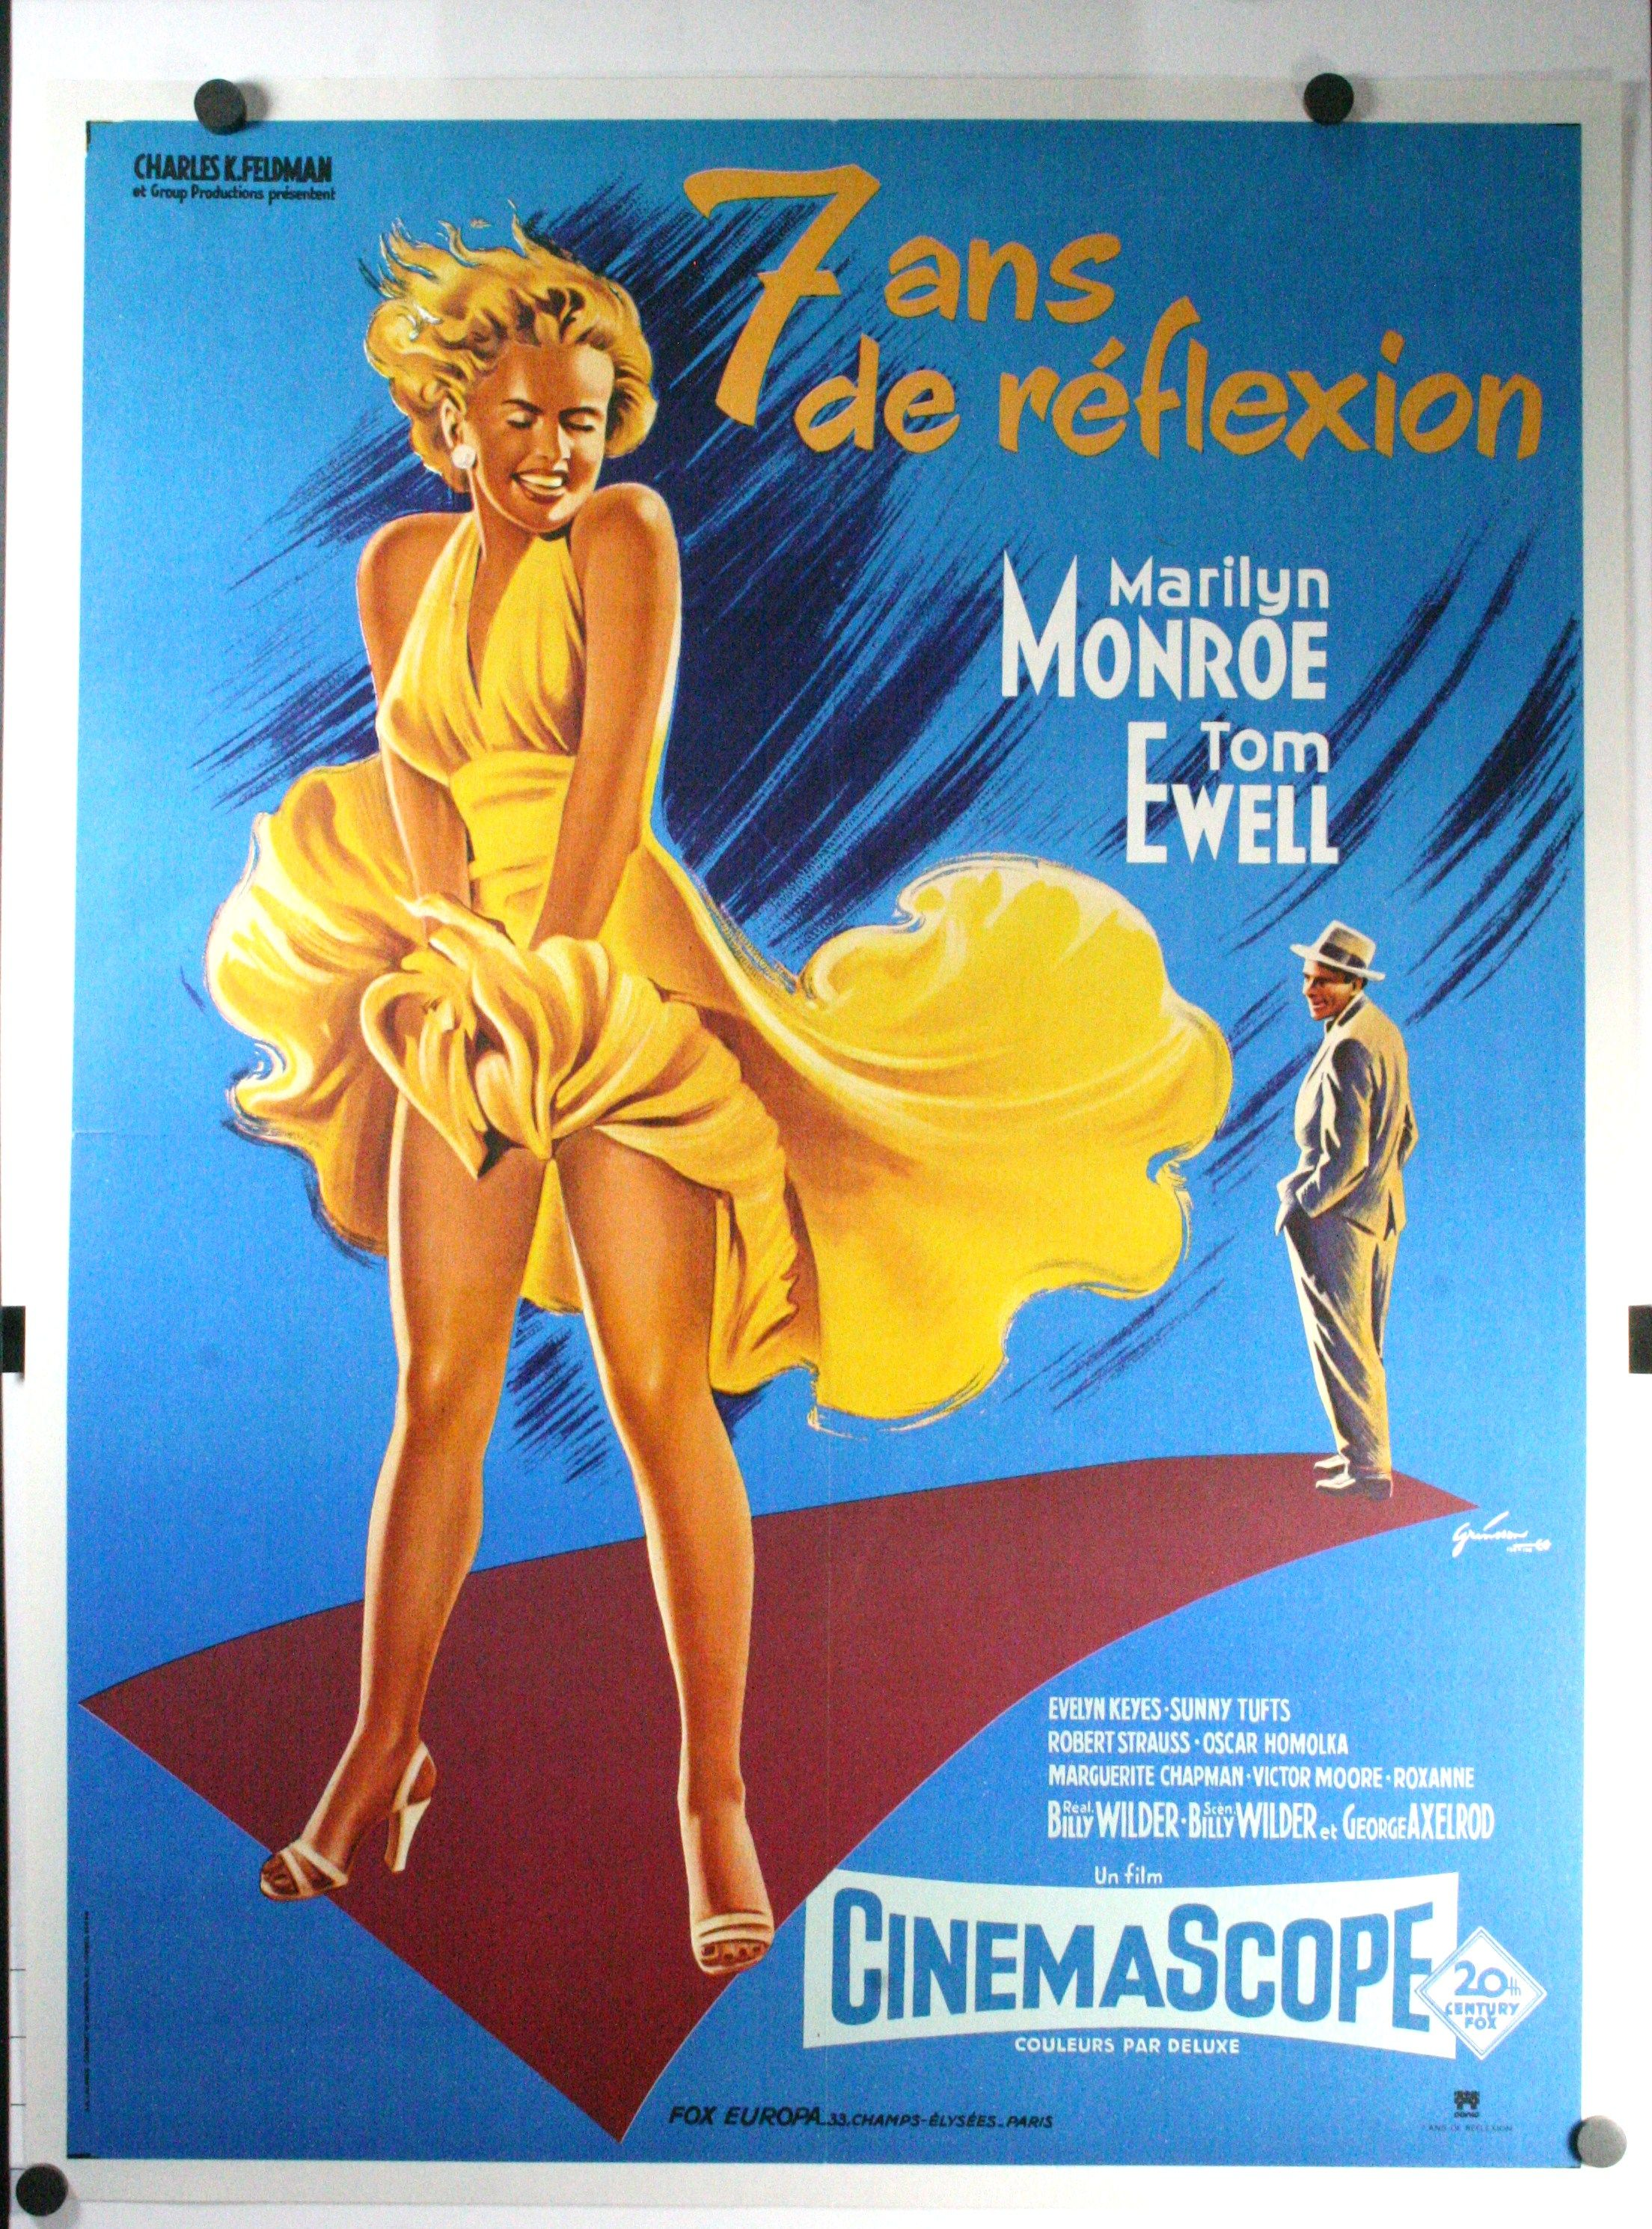 Seven Year Itch Marilyn Monroe French Movie Poster French Movie Posters Marilyn Monroe Movies Movie Posters Vintage